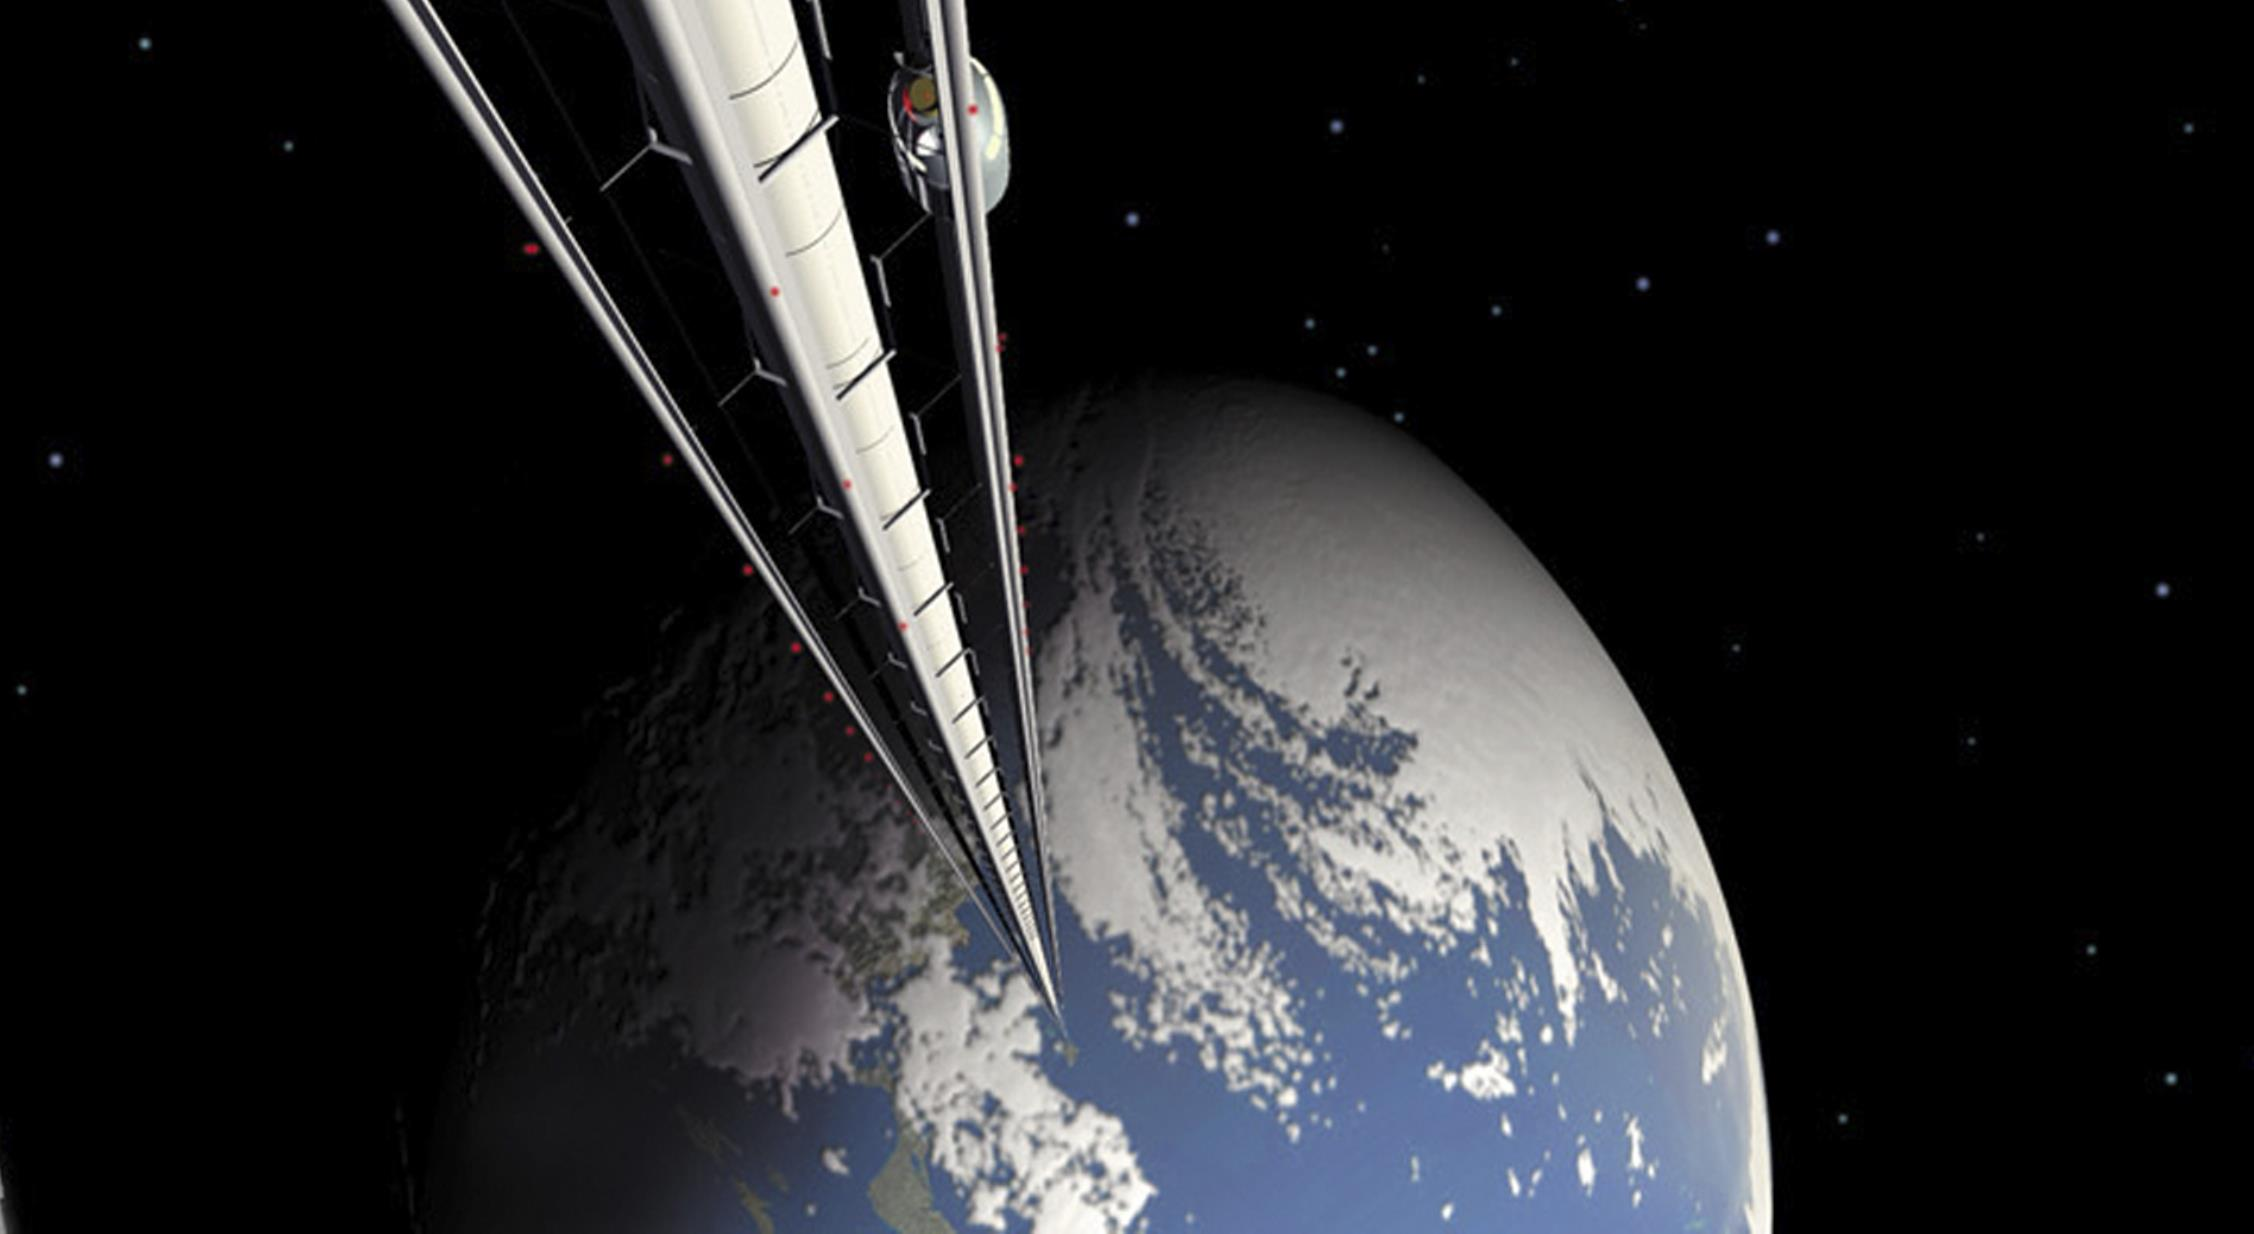 Space Elevator Wallpaper